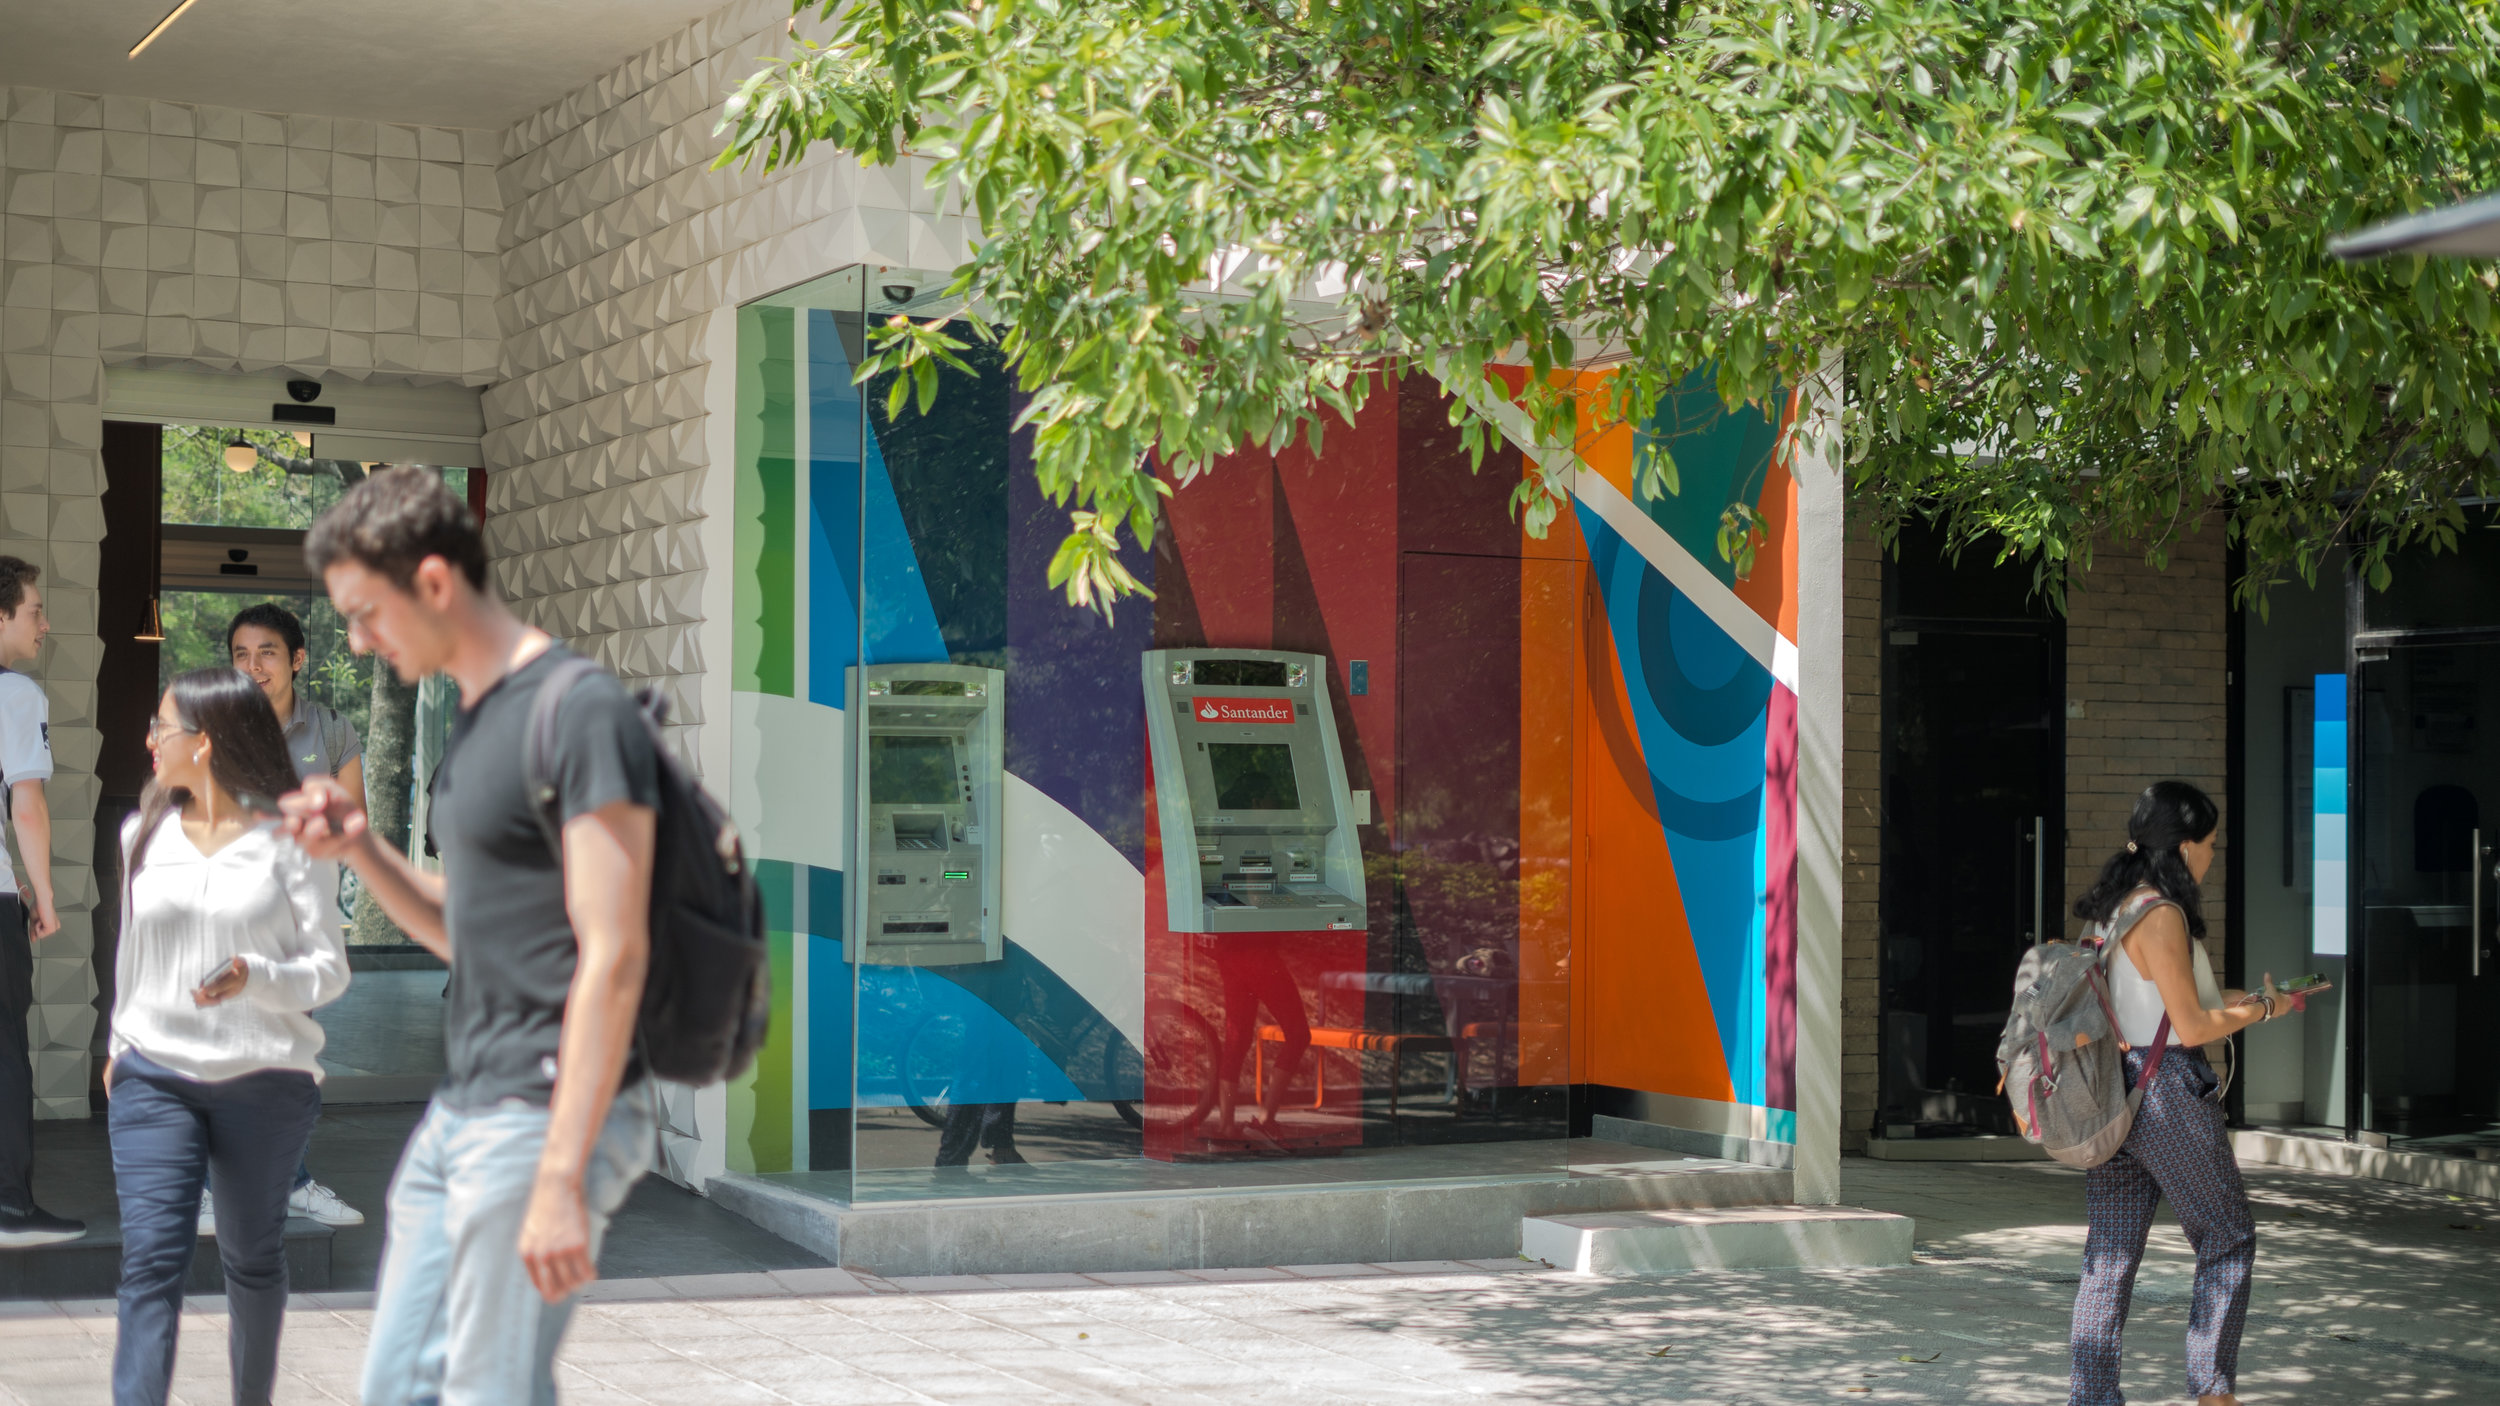 Mural art inside ATMs area of bank branch at university